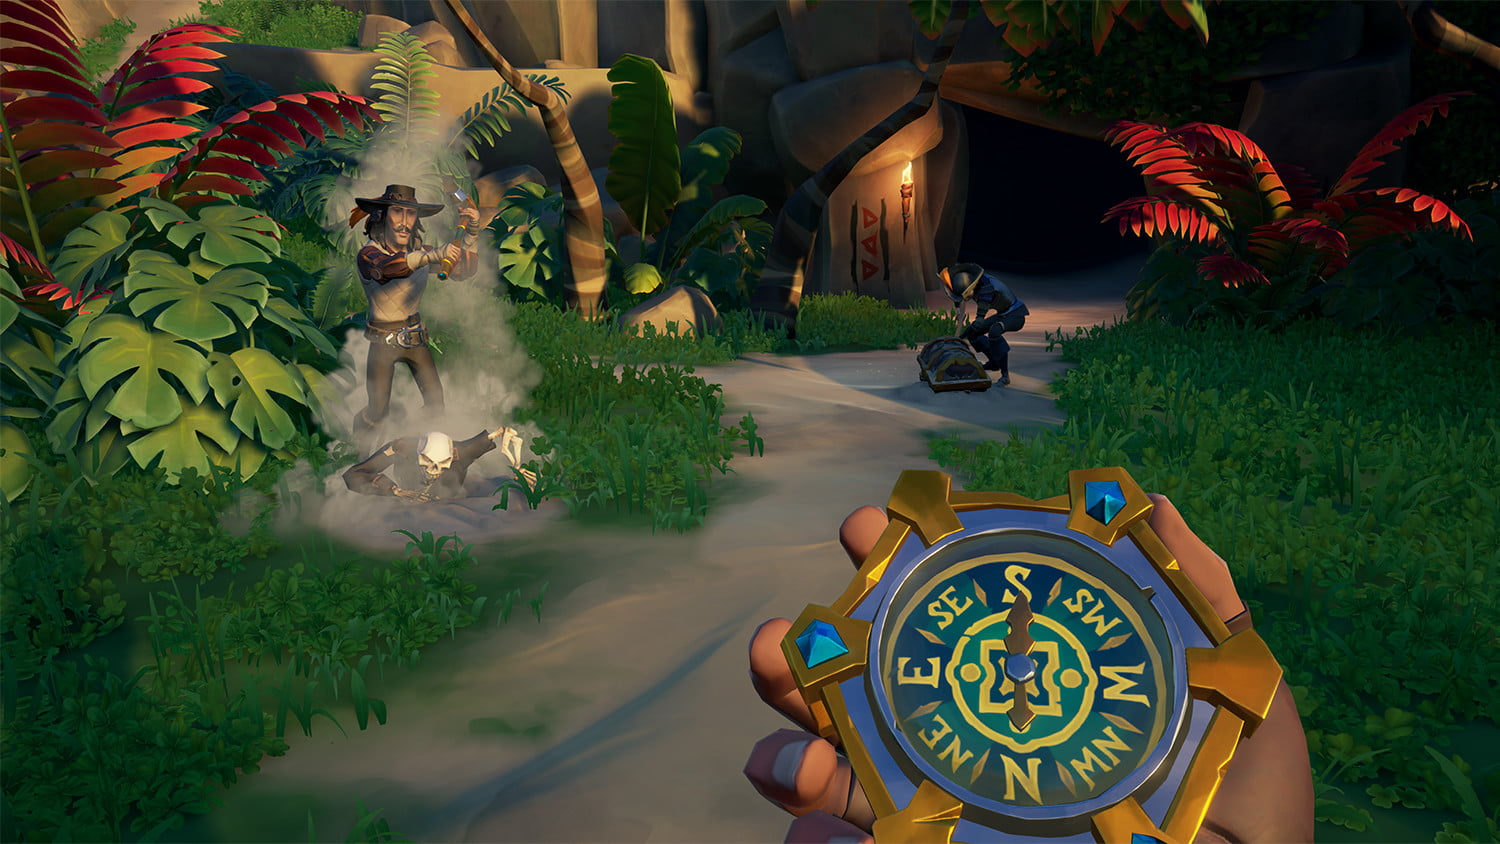 Compass and characters -Sea of thieves review